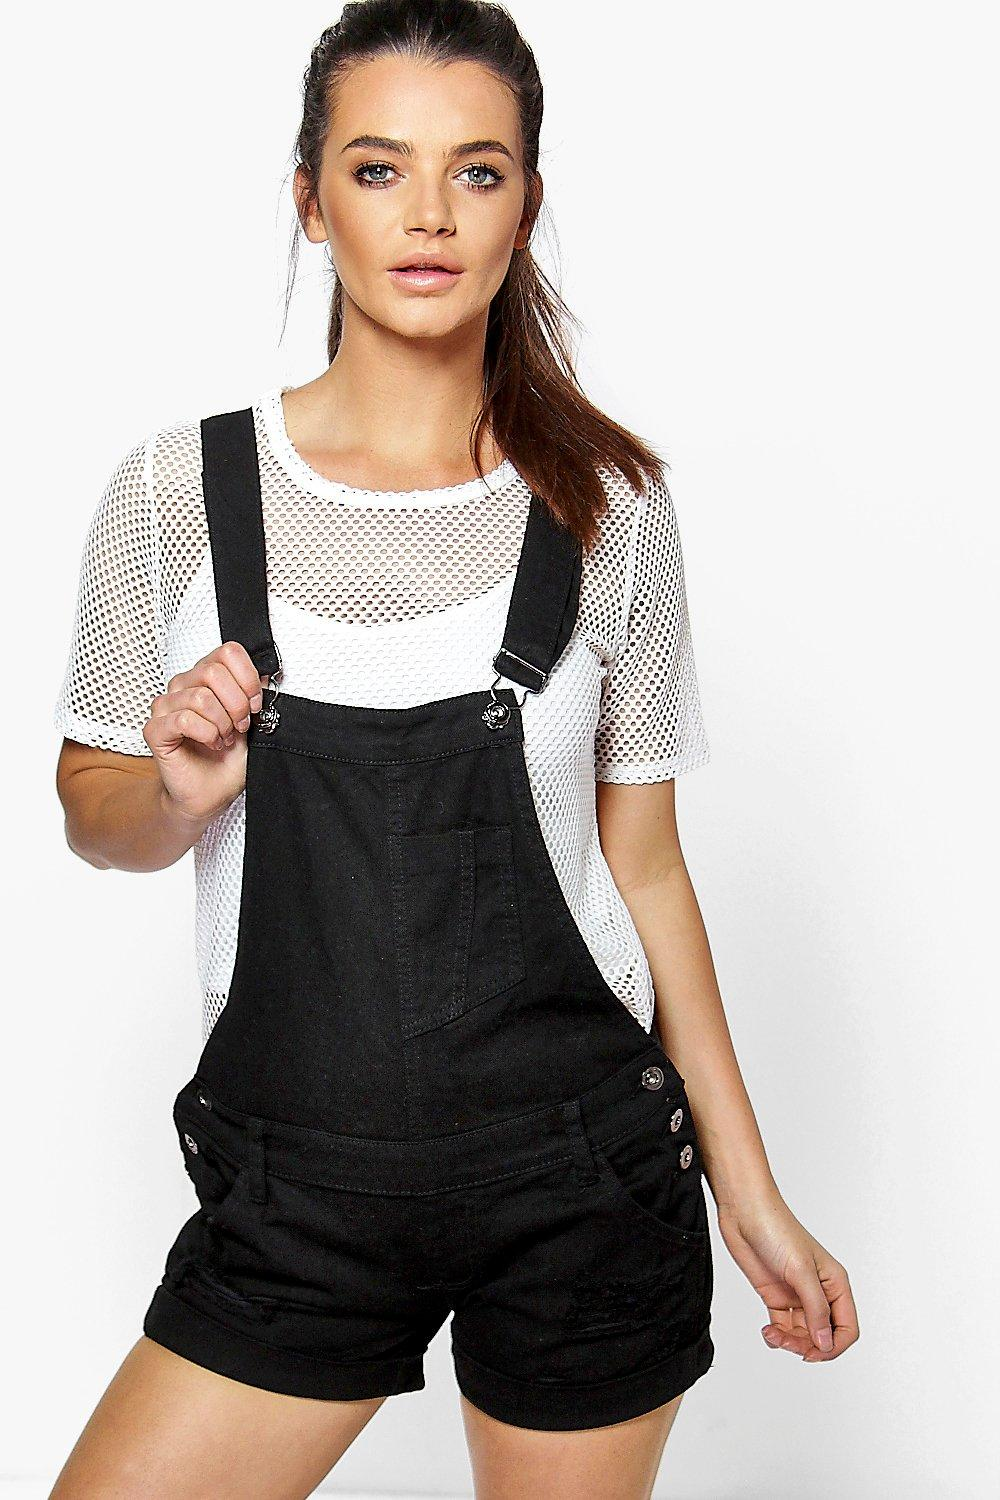 Simple, sweet, spiders! A captivating cotton separate in a retro feminine design from Banned, the Webb Spider Dungaree Shorts are a gorgeous black piece for your nightly capers.